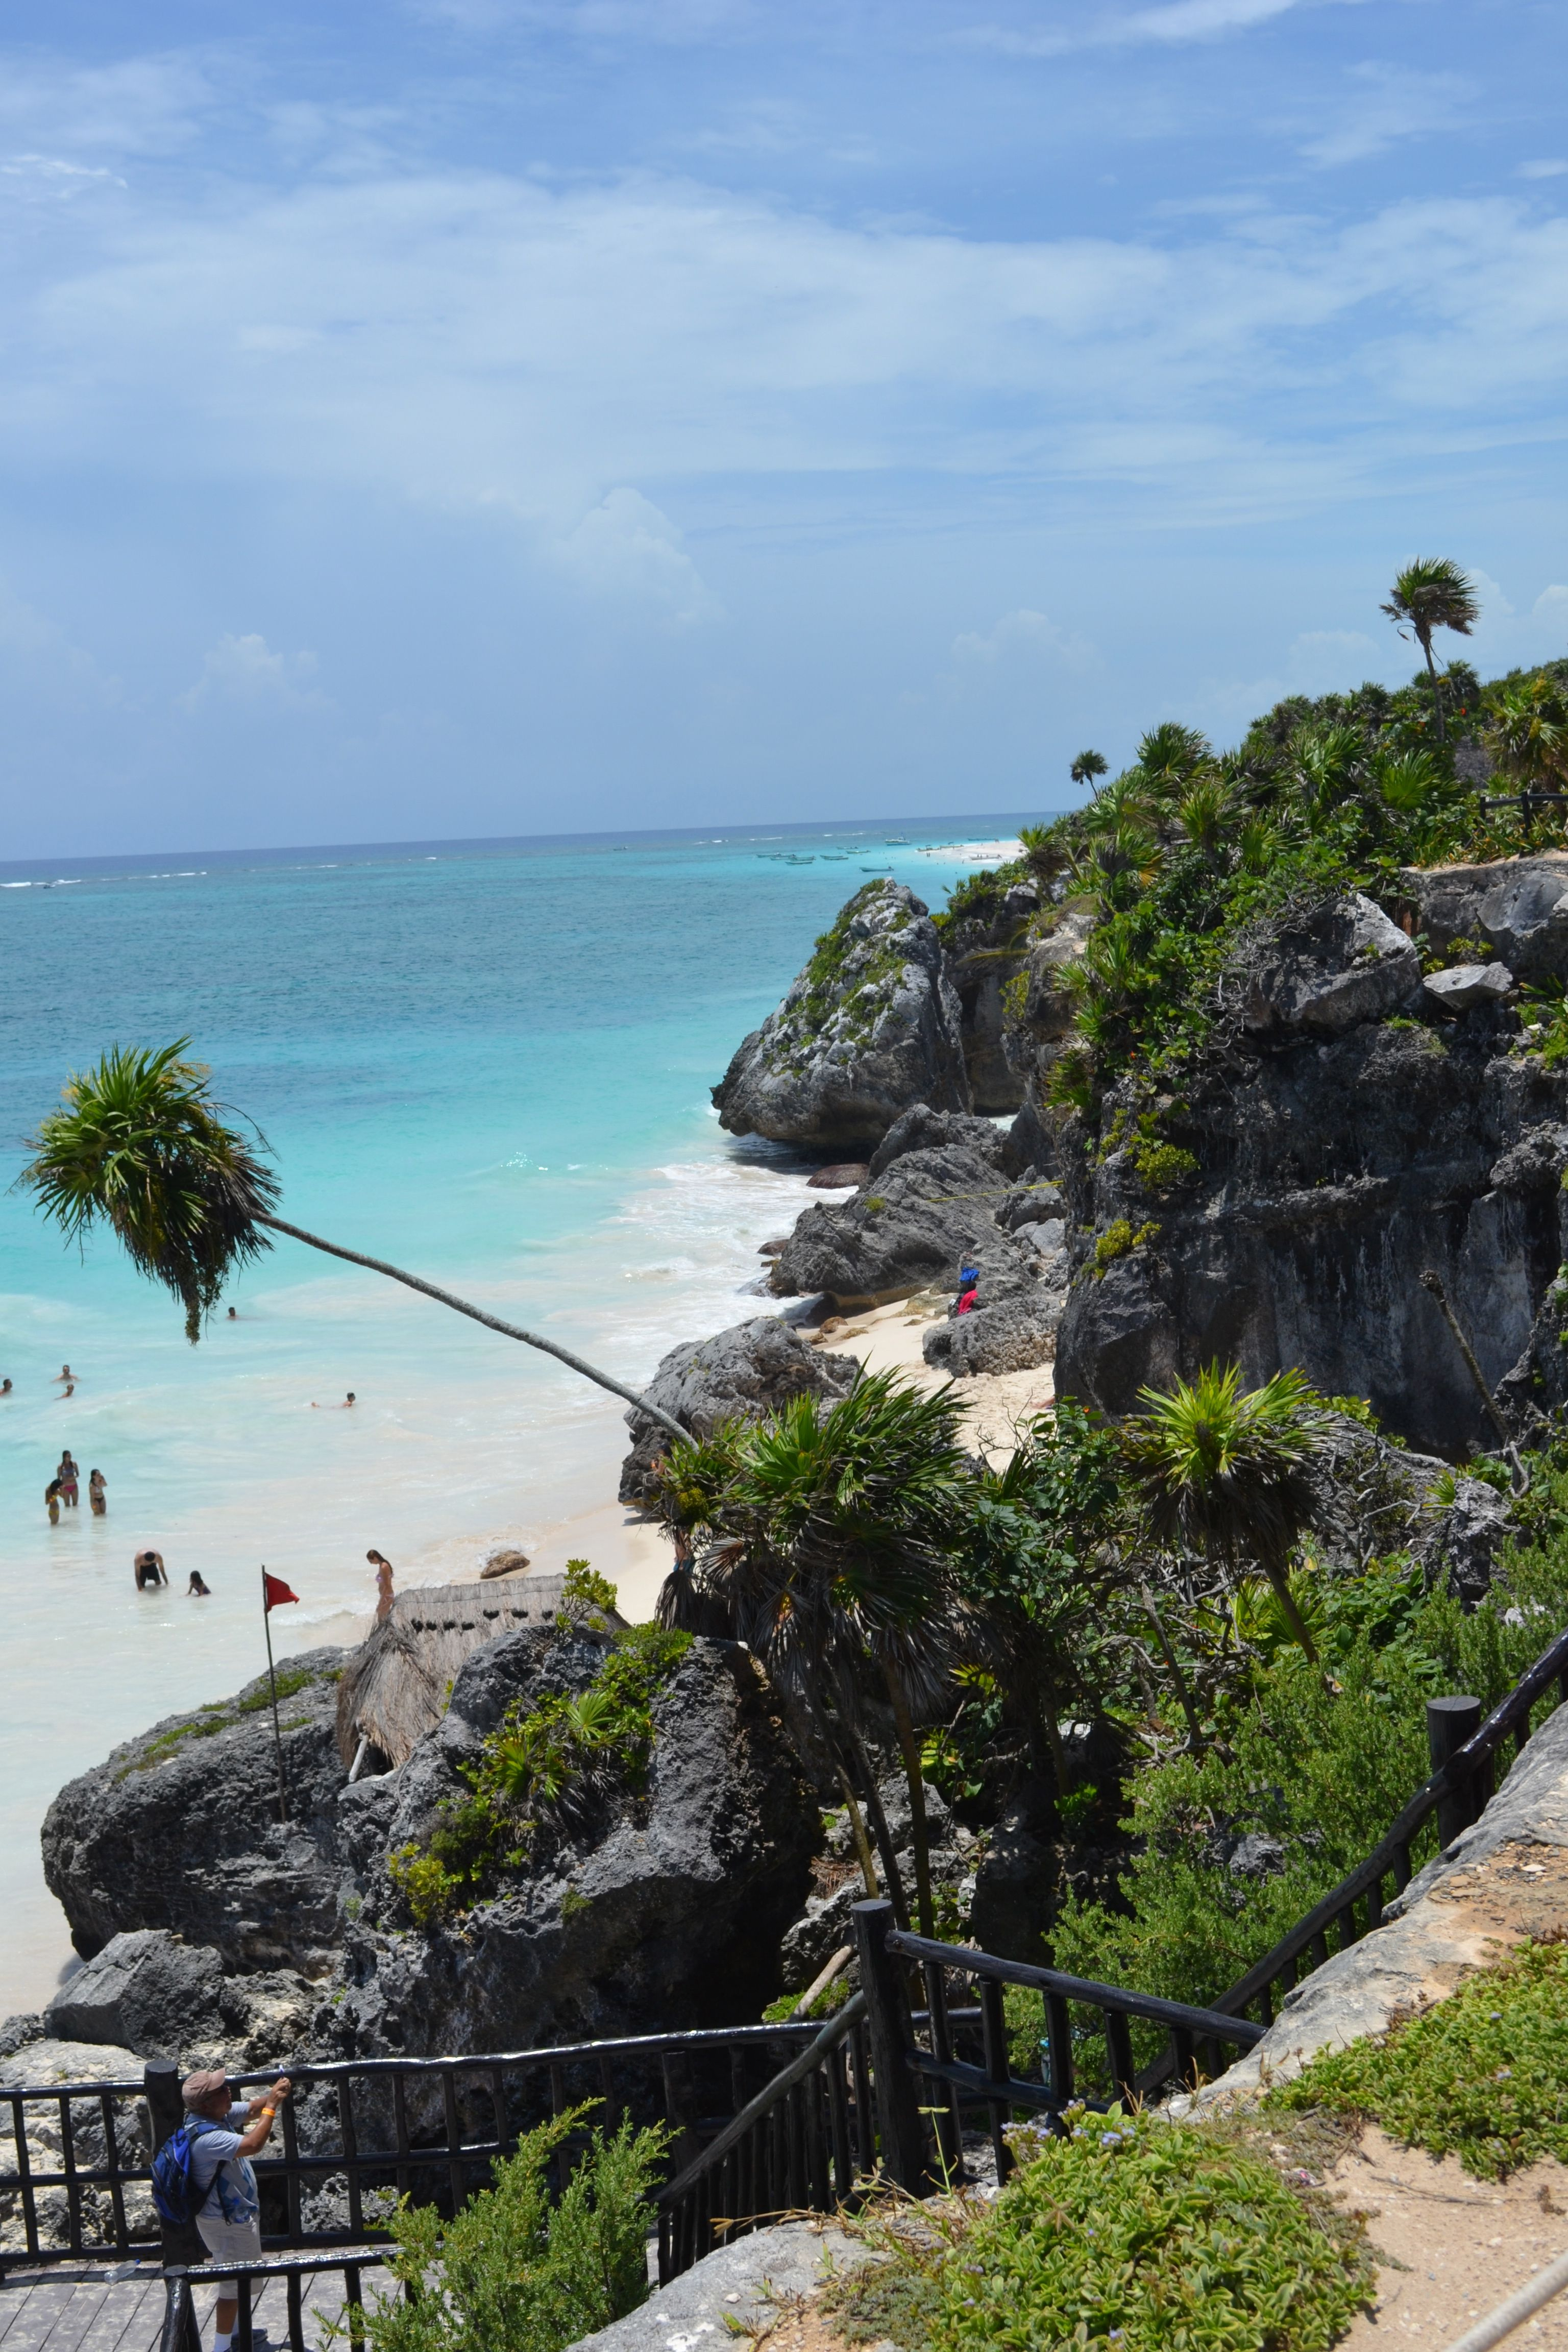 The Mayan ruins in Tulum, Mexico.  Photo by me....magnificent place and so lucky to have seen it.